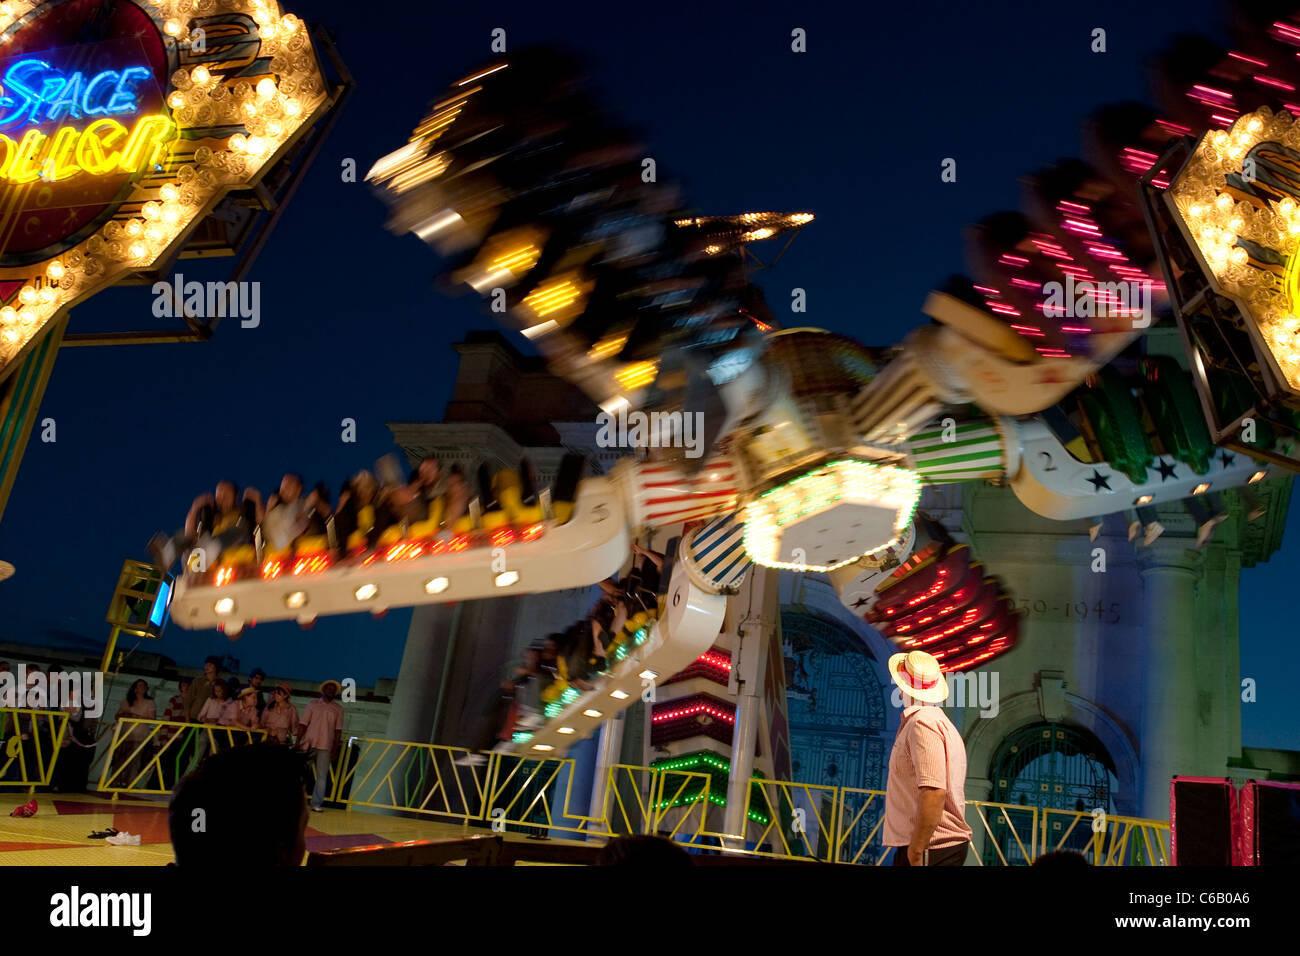 Striped shirted worker watching a fairground ride whirl overhead - Stock Image